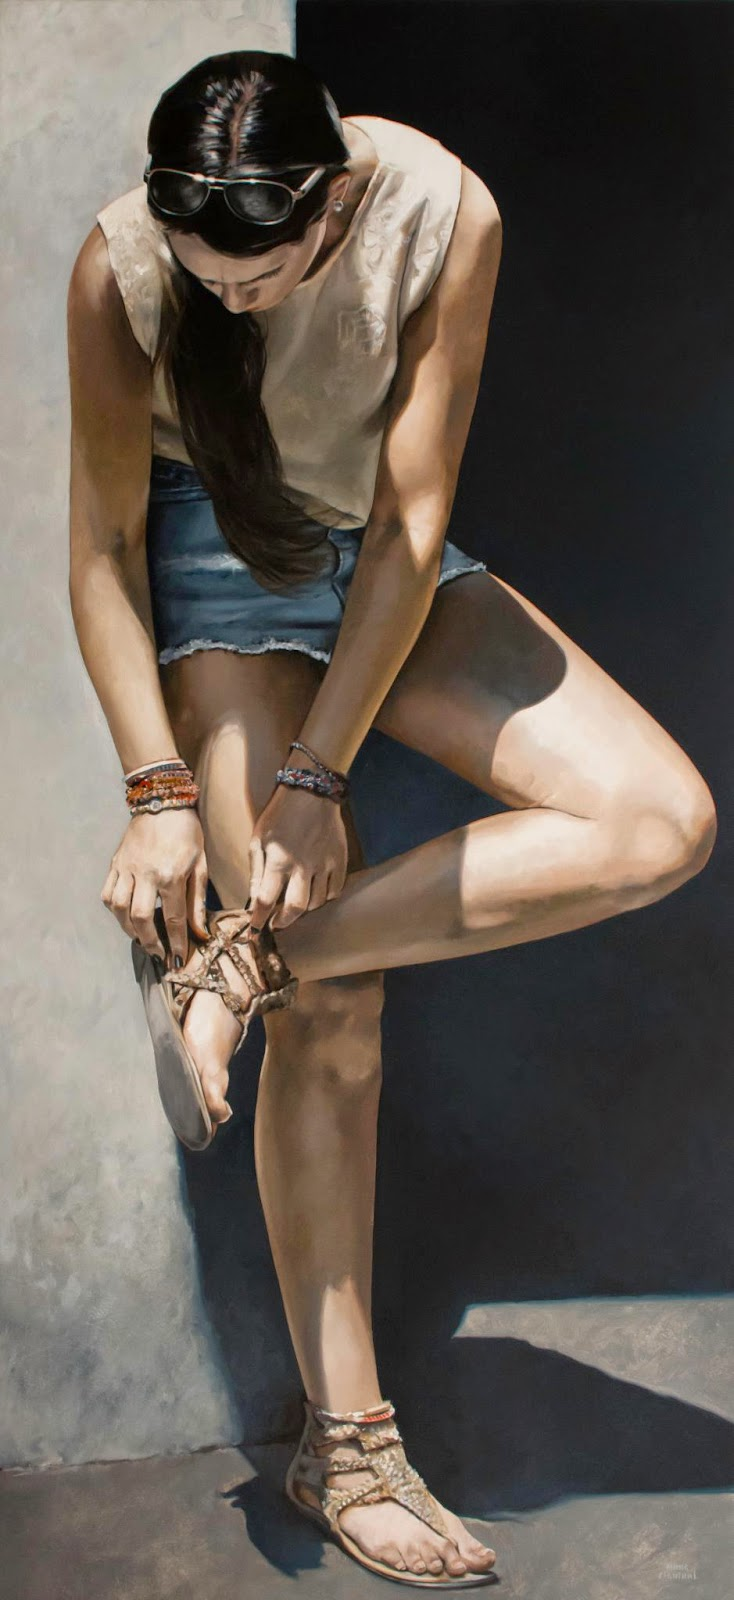 Hyper Realistic Girls Figure Painting By Marc Figueras 22